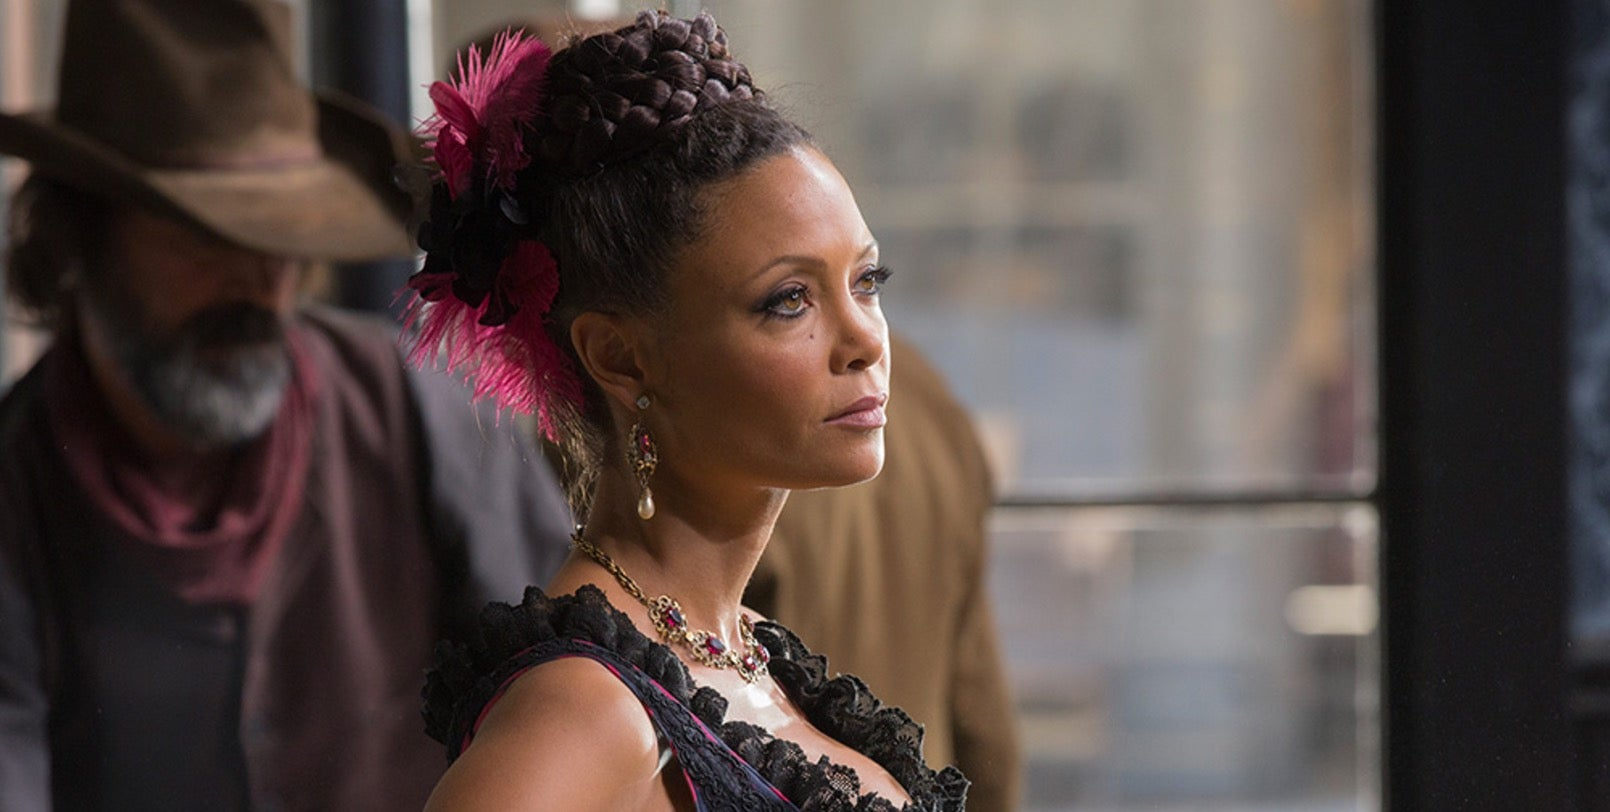 Westworld's Thandie Newton May Be Joining The Han Solo Movie